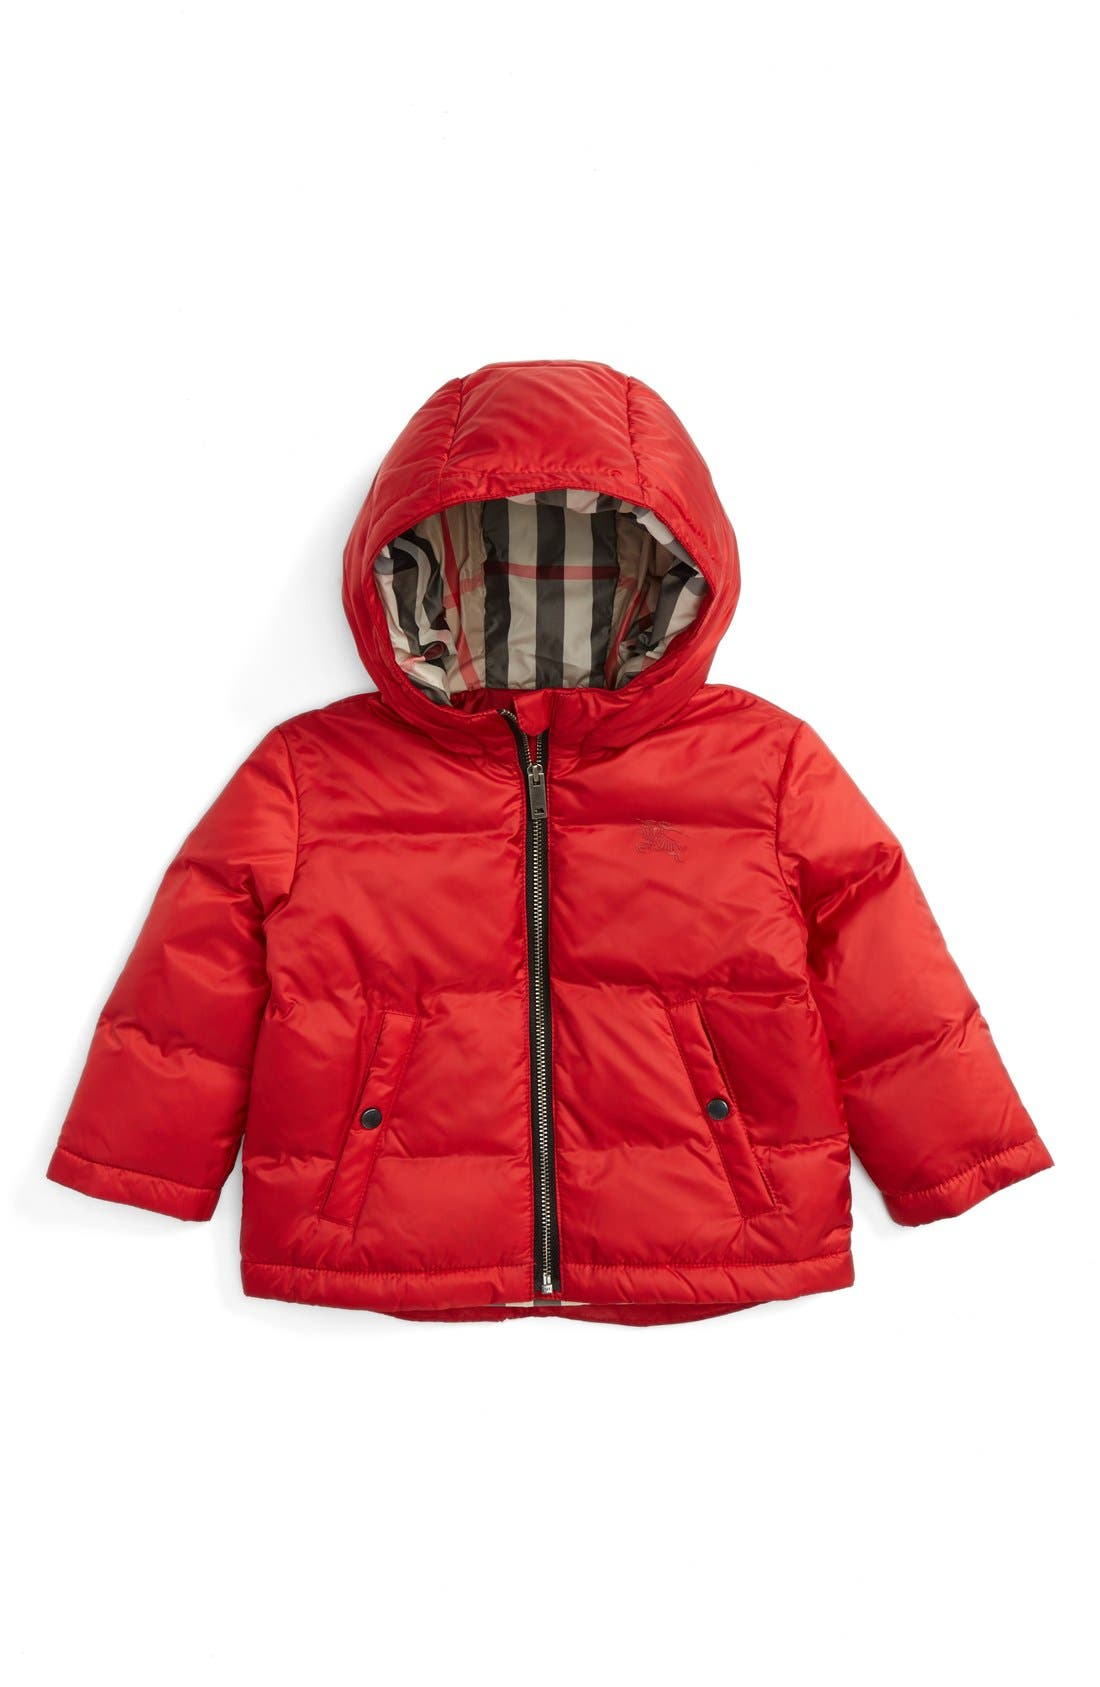 Burberry Rio Hooded Puffer Jacket (Baby Girls)